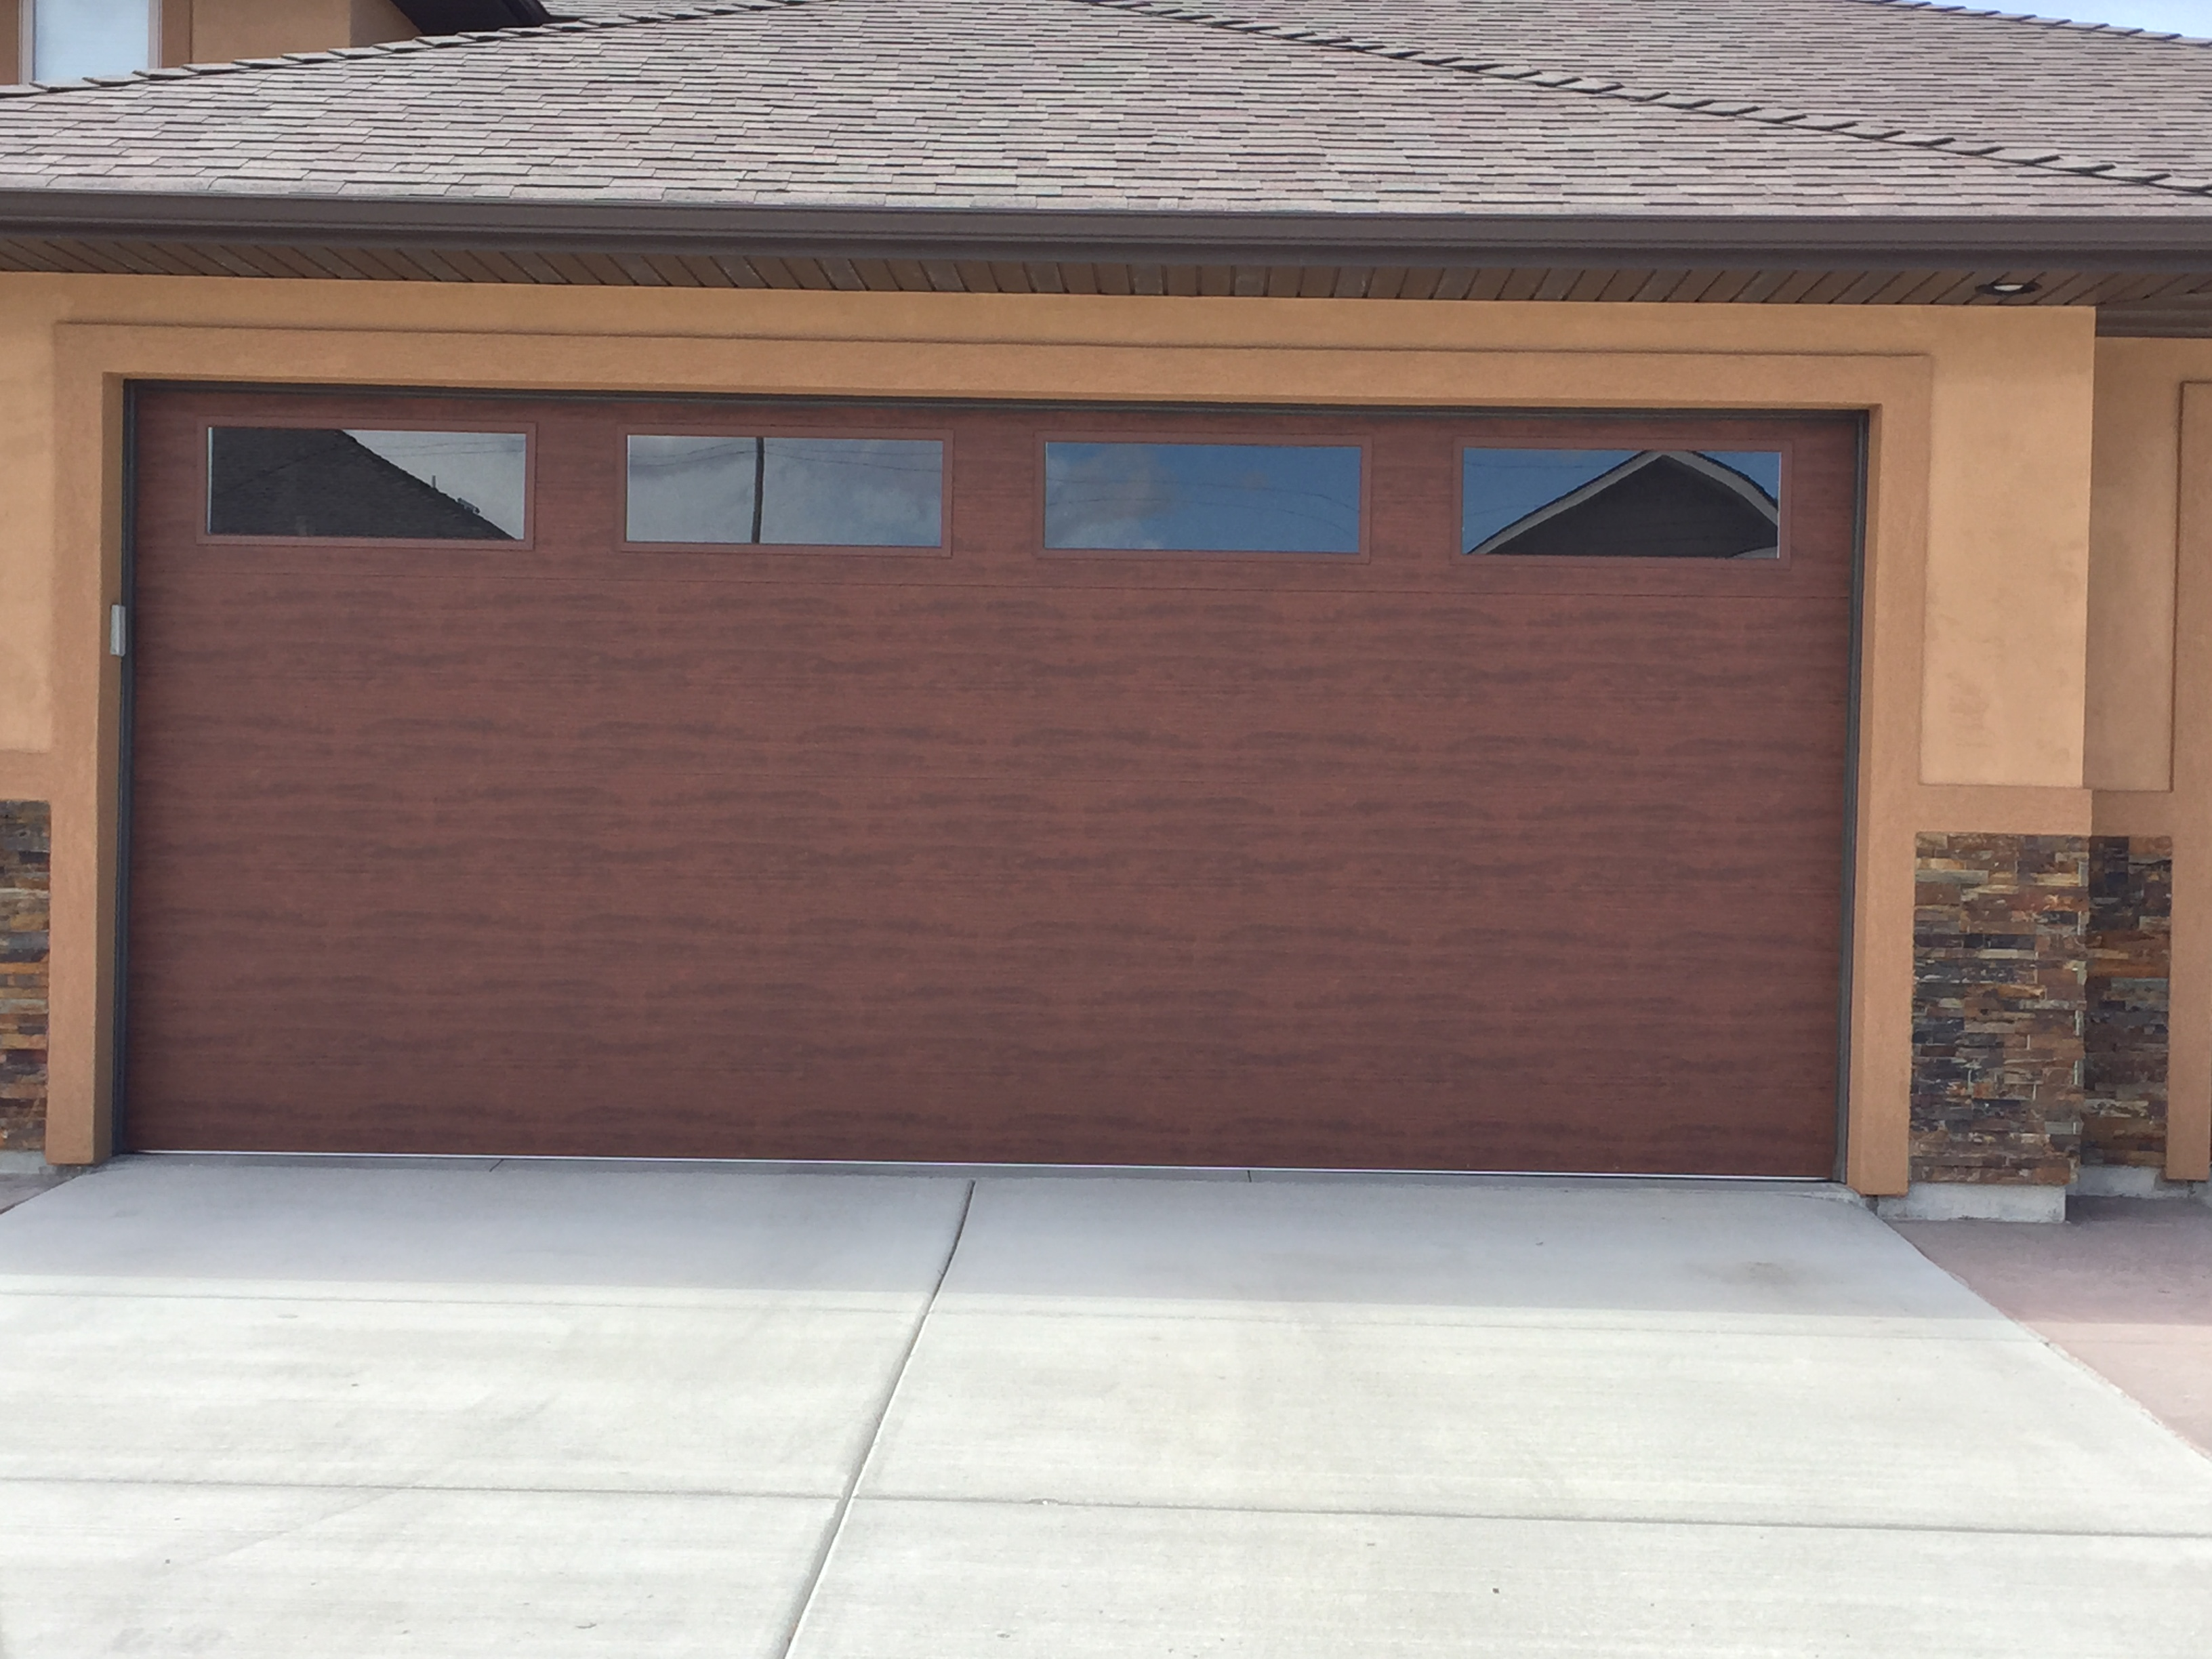 door garage are fair providing and the co pioneers opener of we knoxville residential company shutterstock repair been since service has overhead s knox